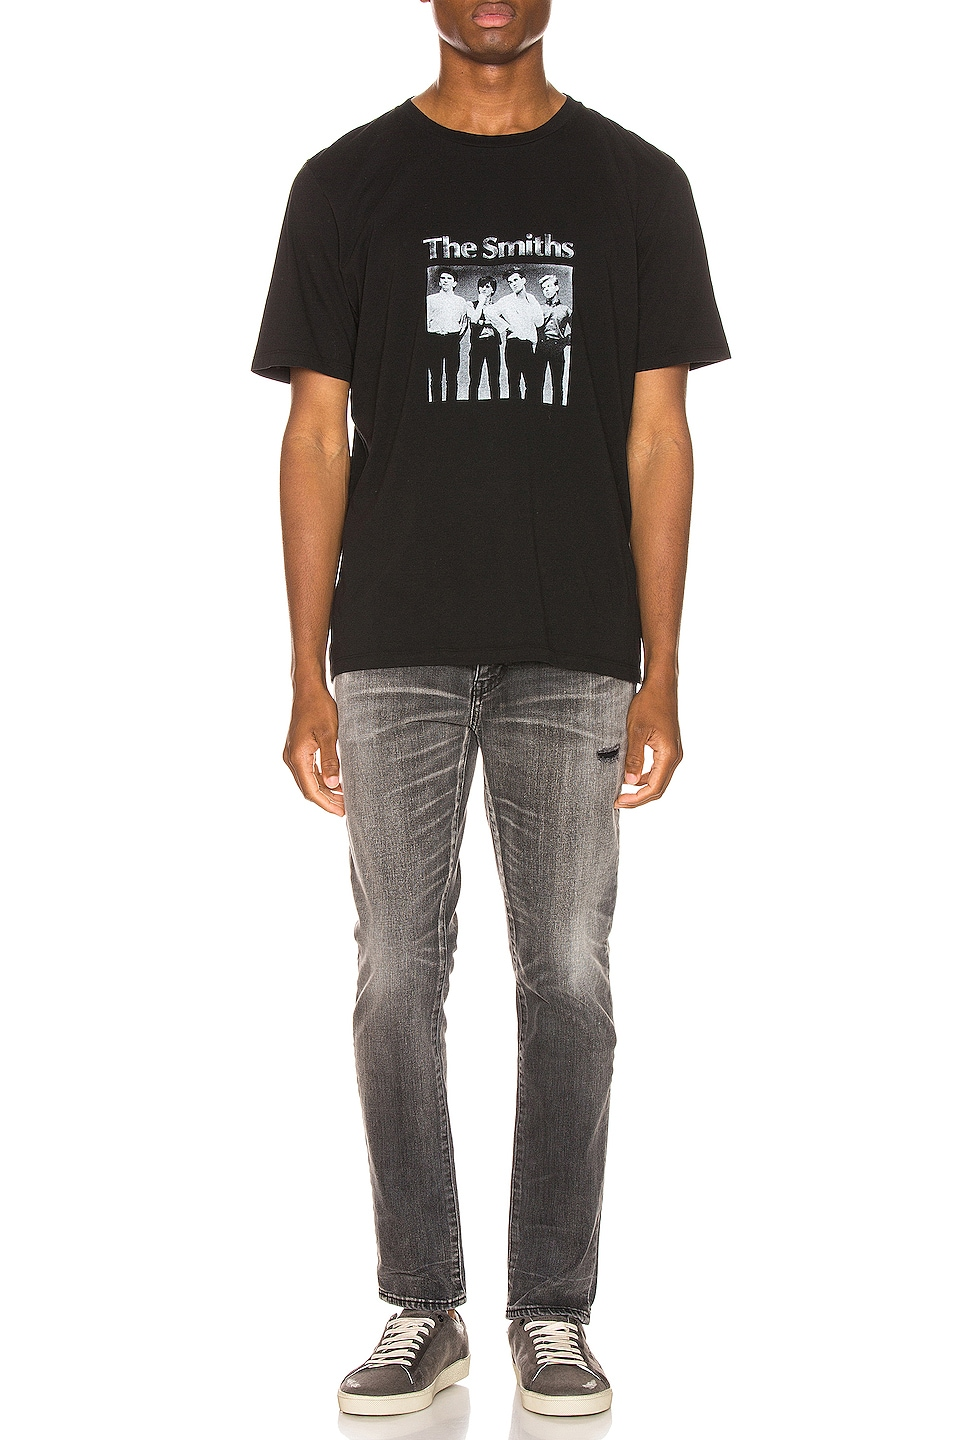 Image 4 of Saint Laurent The Smiths Tee in Black & Natural